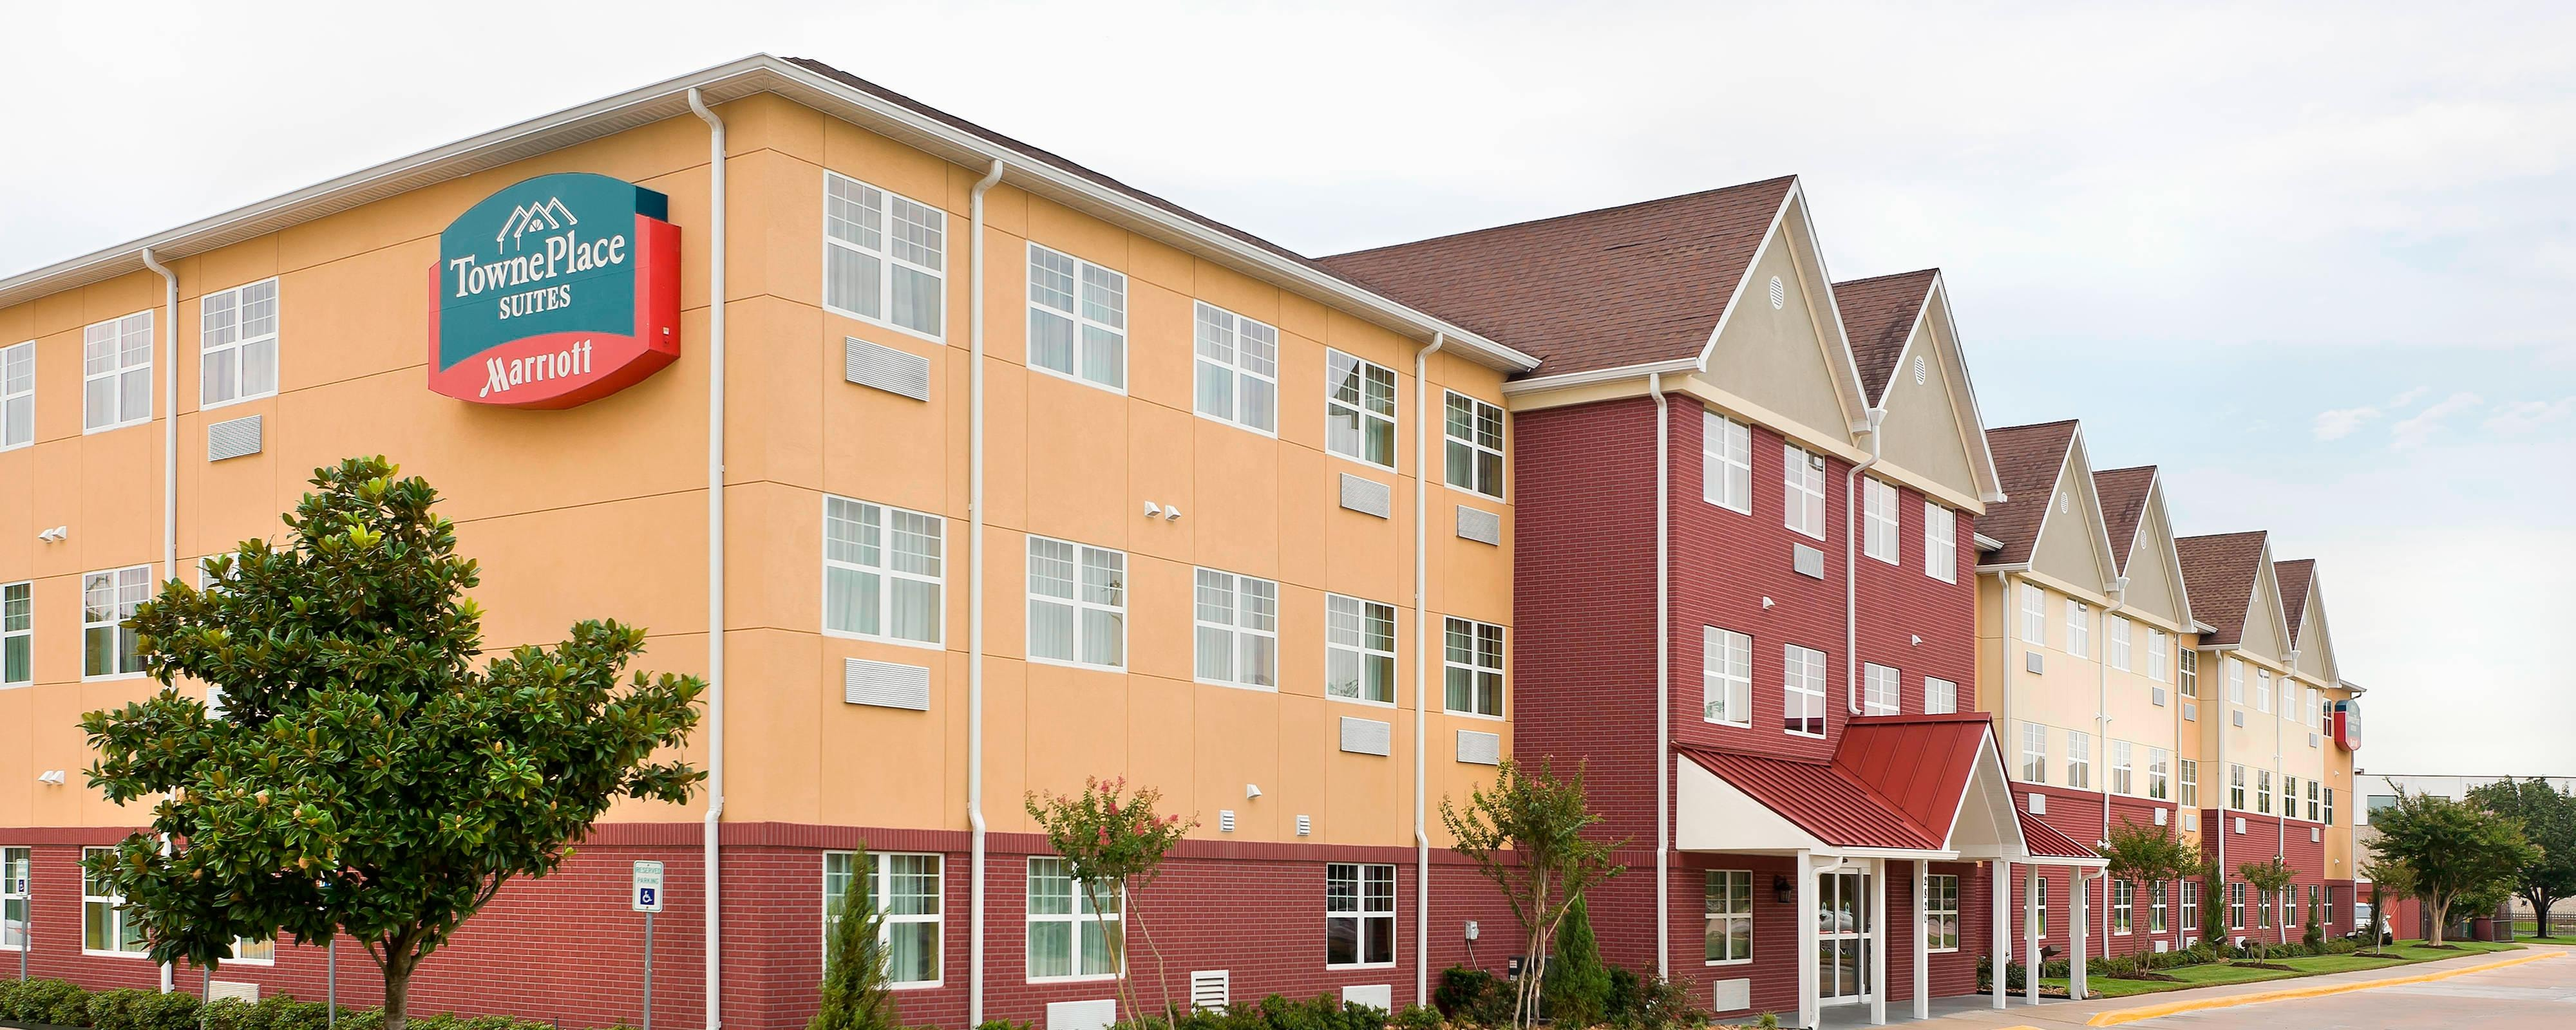 Extended Stay hotels Houston TX.